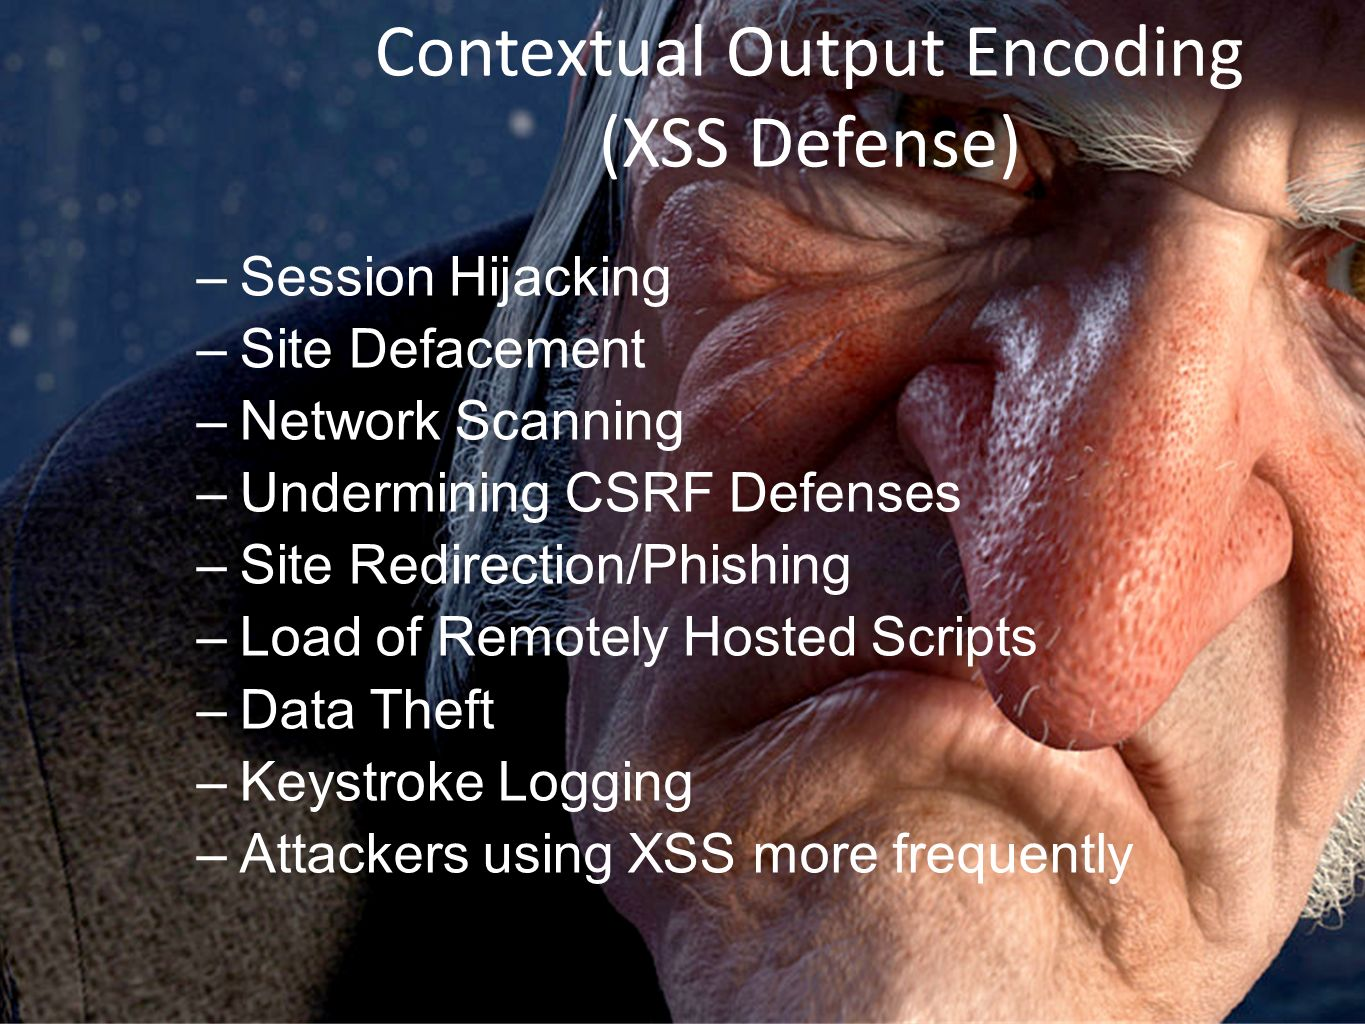 Contextual Output Encoding (XSS Defense) –Session Hijacking –Site Defacement –Network Scanning –Undermining CSRF Defenses –Site Redirection/Phishing –